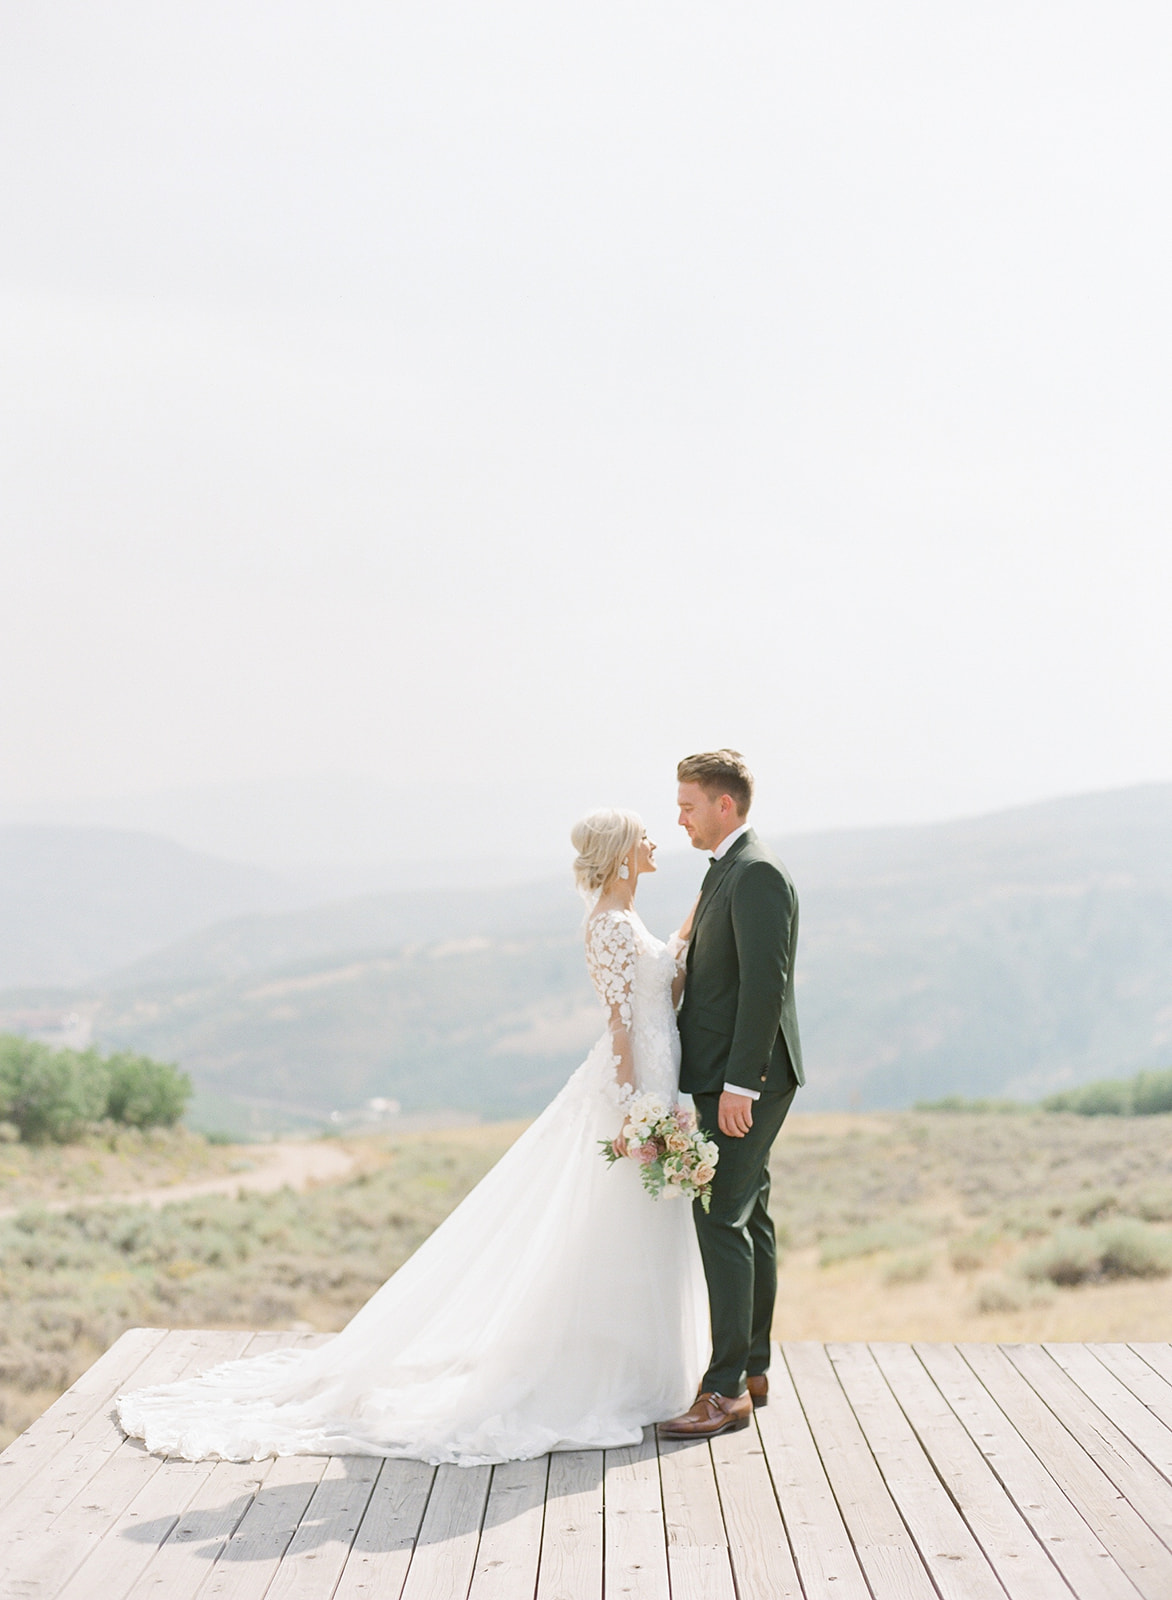 Groom with Real Bride Wearing 3-D Floral Lace Sheath Wedding Dress with Overskirt by Maggie Sottero